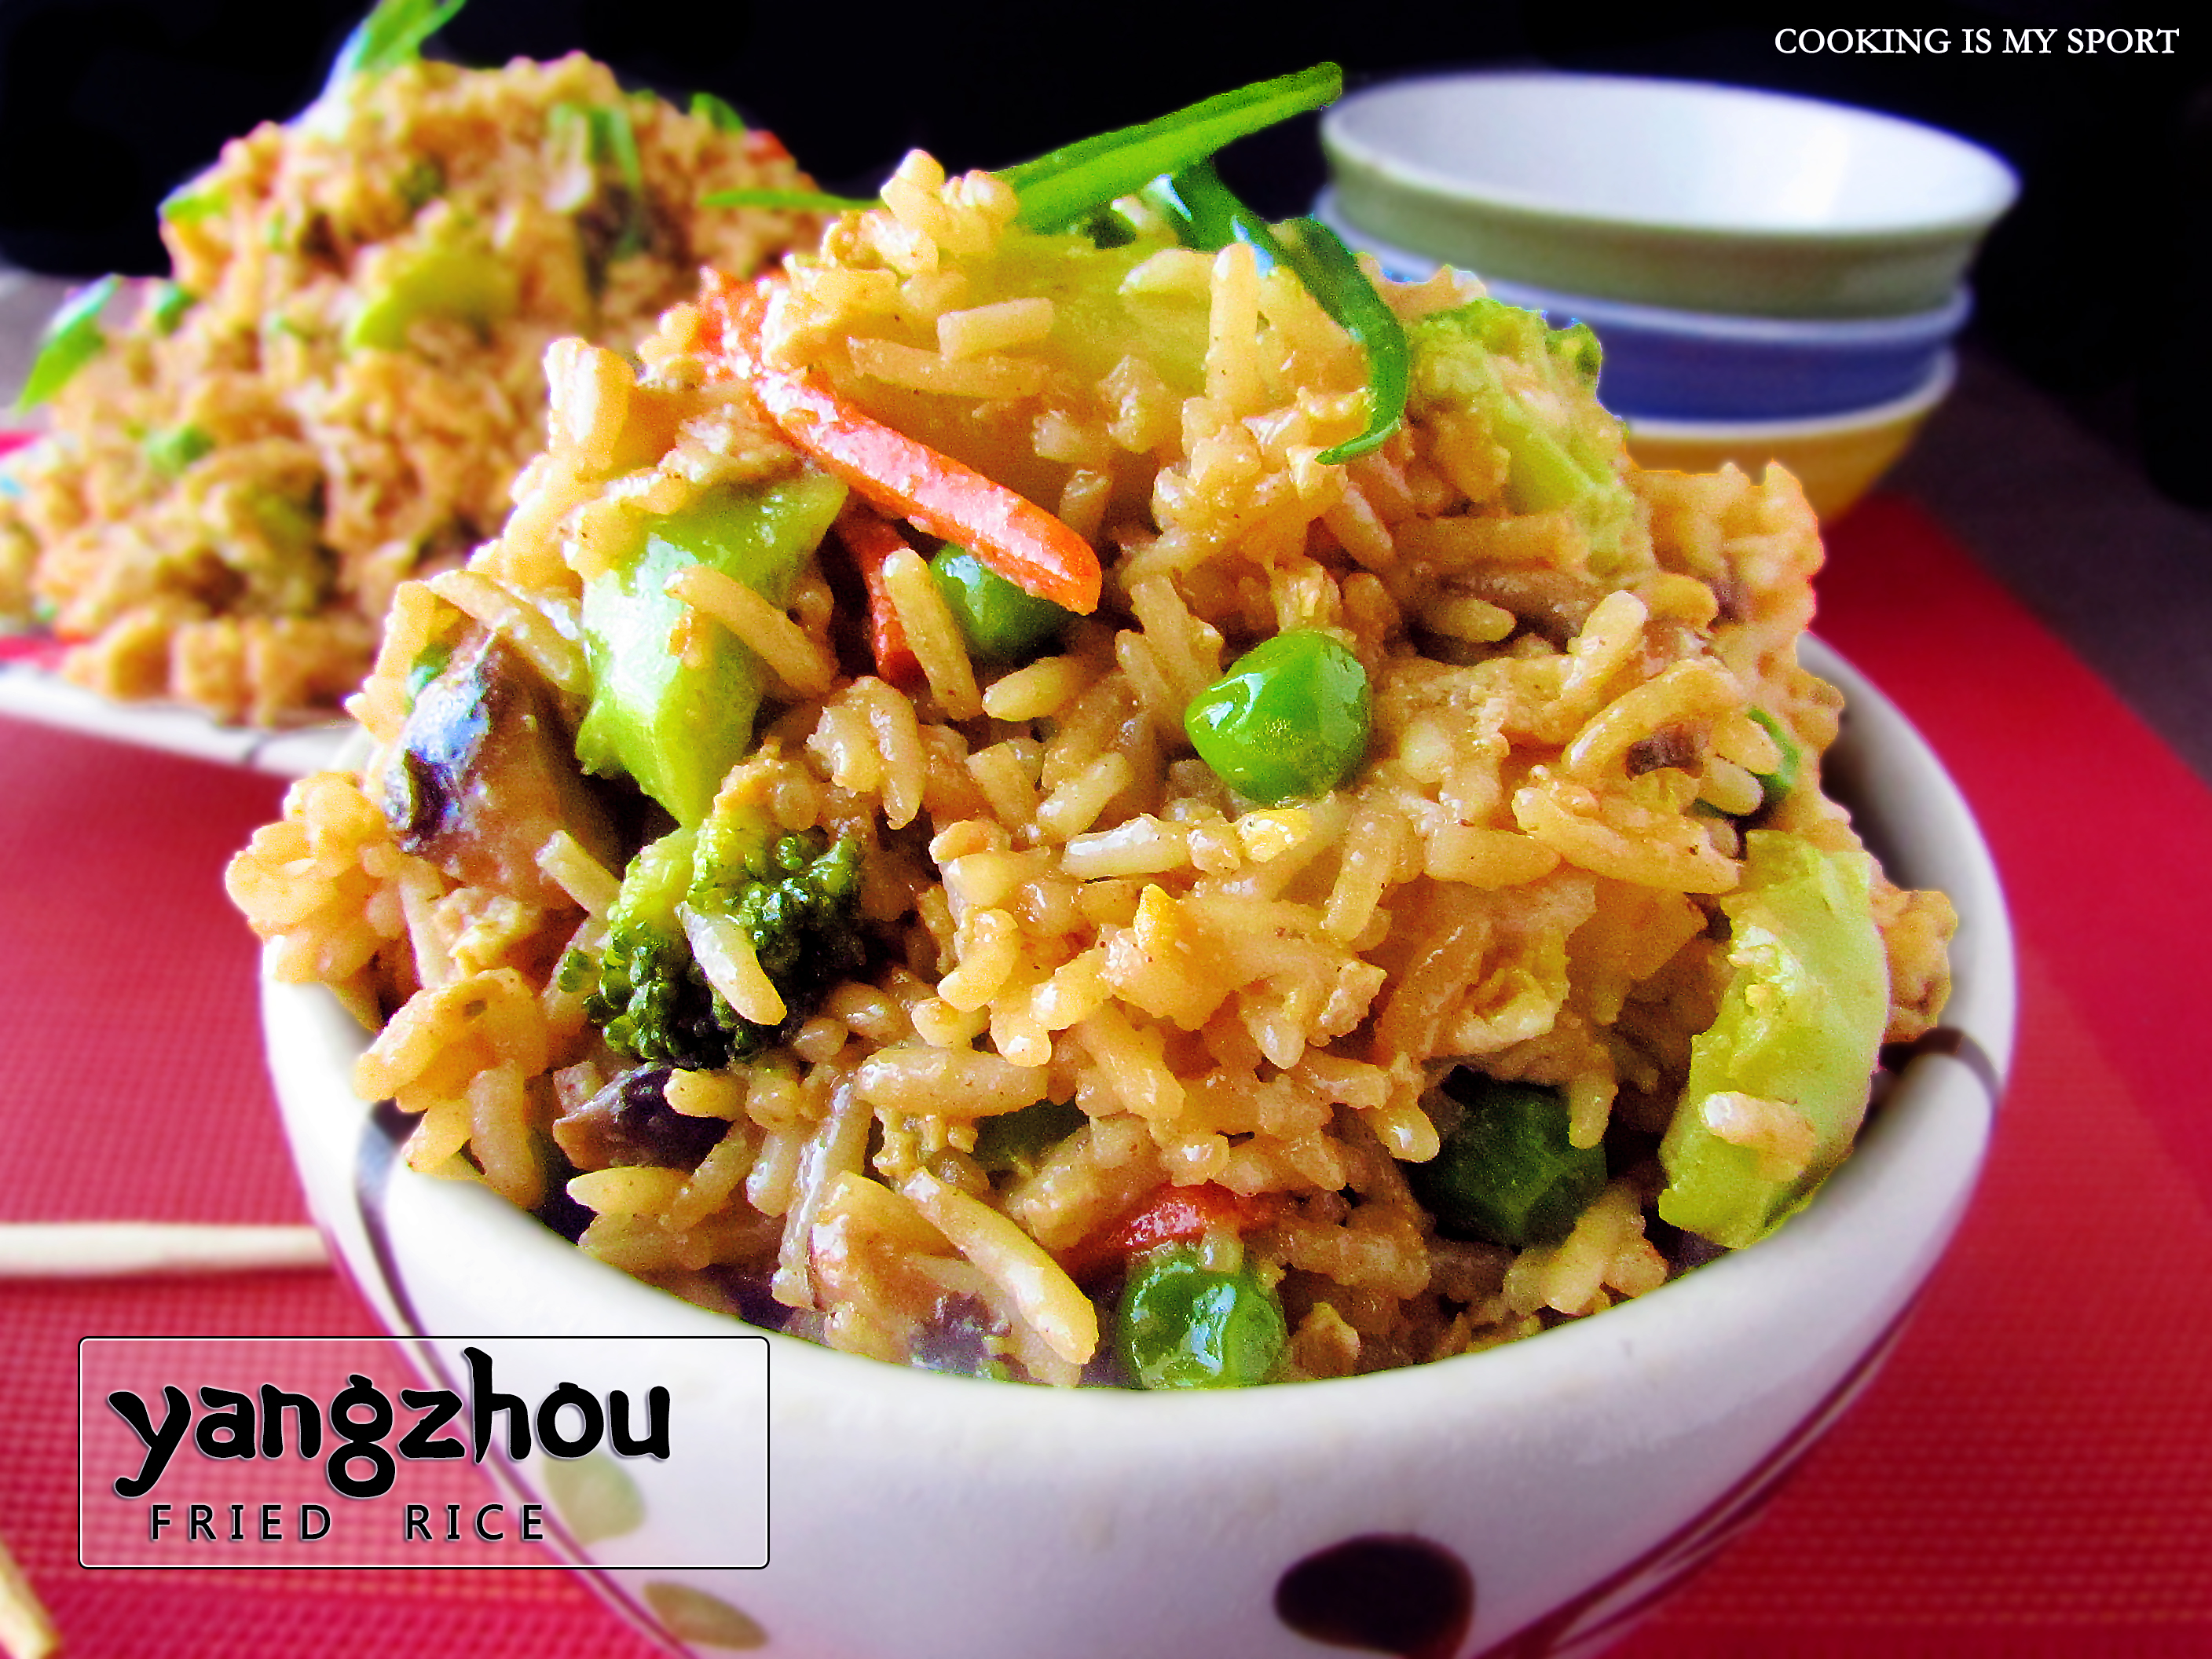 Yangzhou fried rice cooking is my sport yangzhou fried rice1 ccuart Image collections